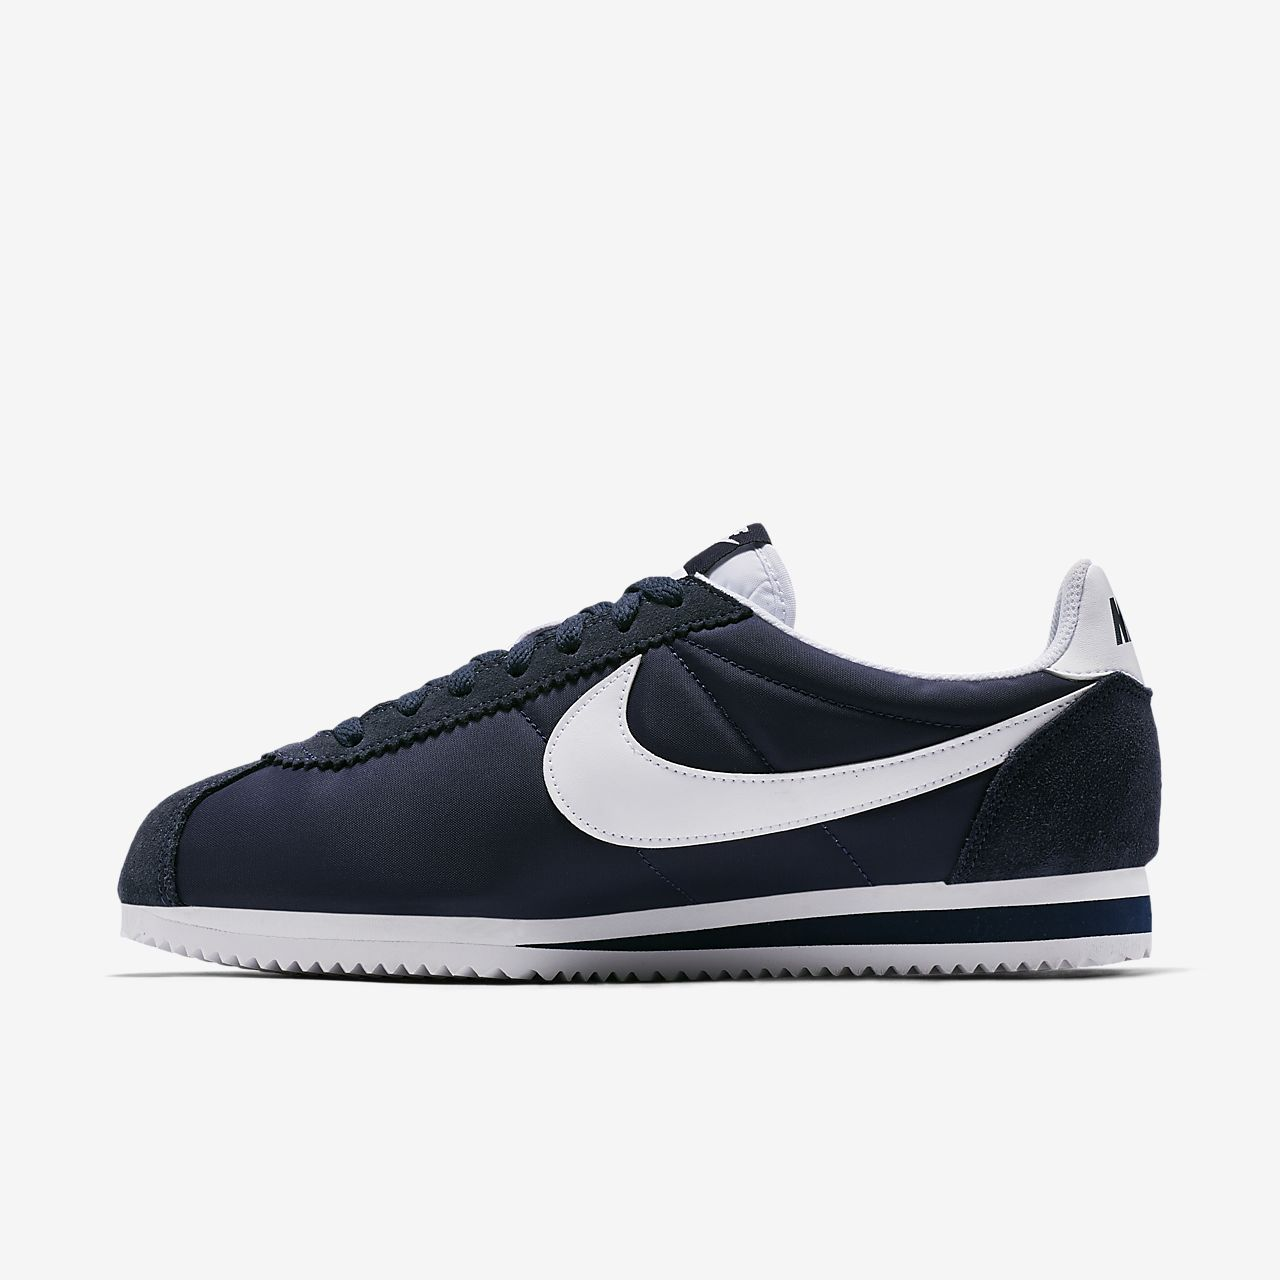 nike classic cortez nylon unisex shoe sa. Black Bedroom Furniture Sets. Home Design Ideas